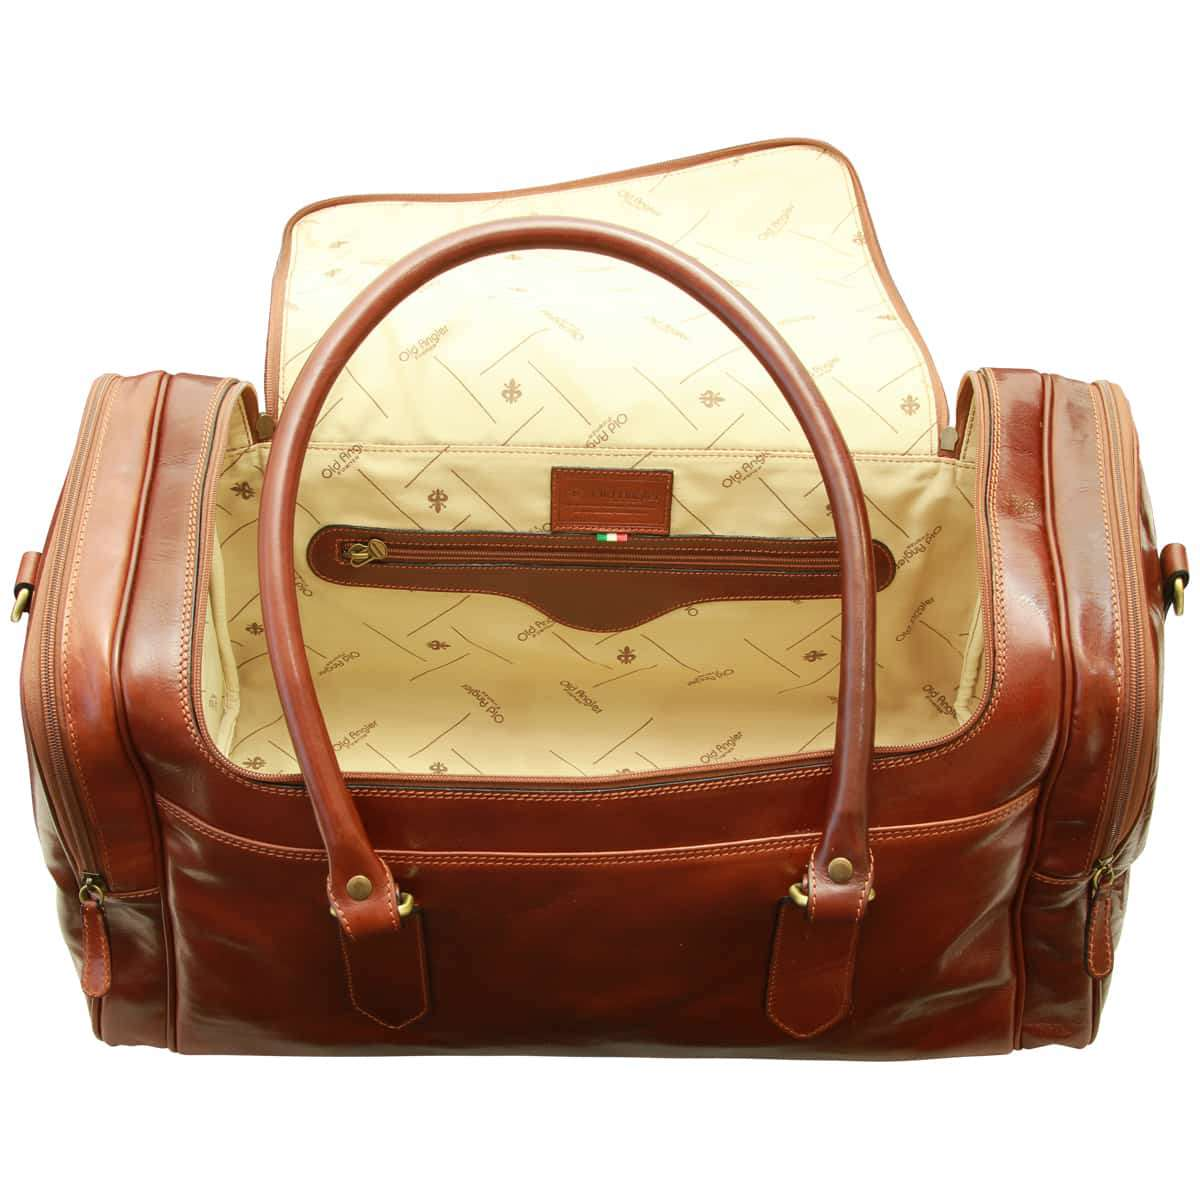 Arno Leather Travel Bag – Brown | 077805MA W | Old Angler Firenze